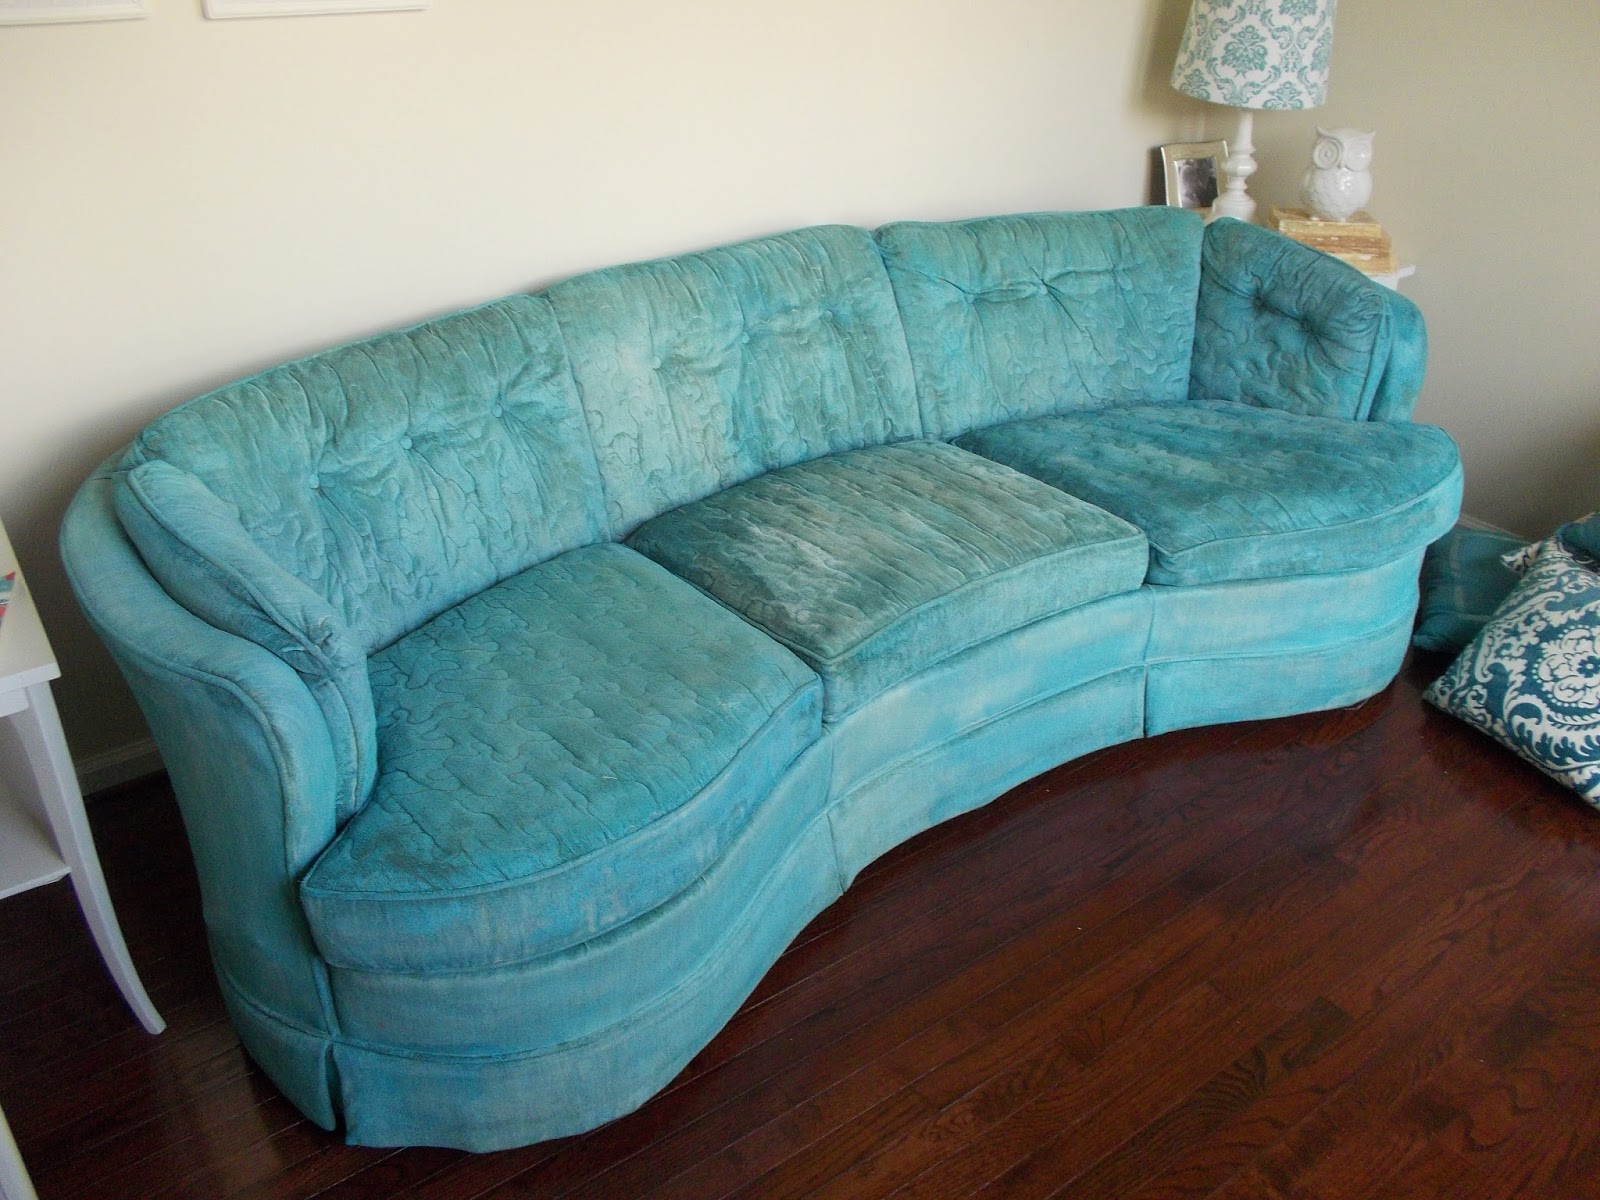 Teal Sofas Ashley Furniture Power Reclining Sofa Reviews Stuff For Sale Vintage Couch